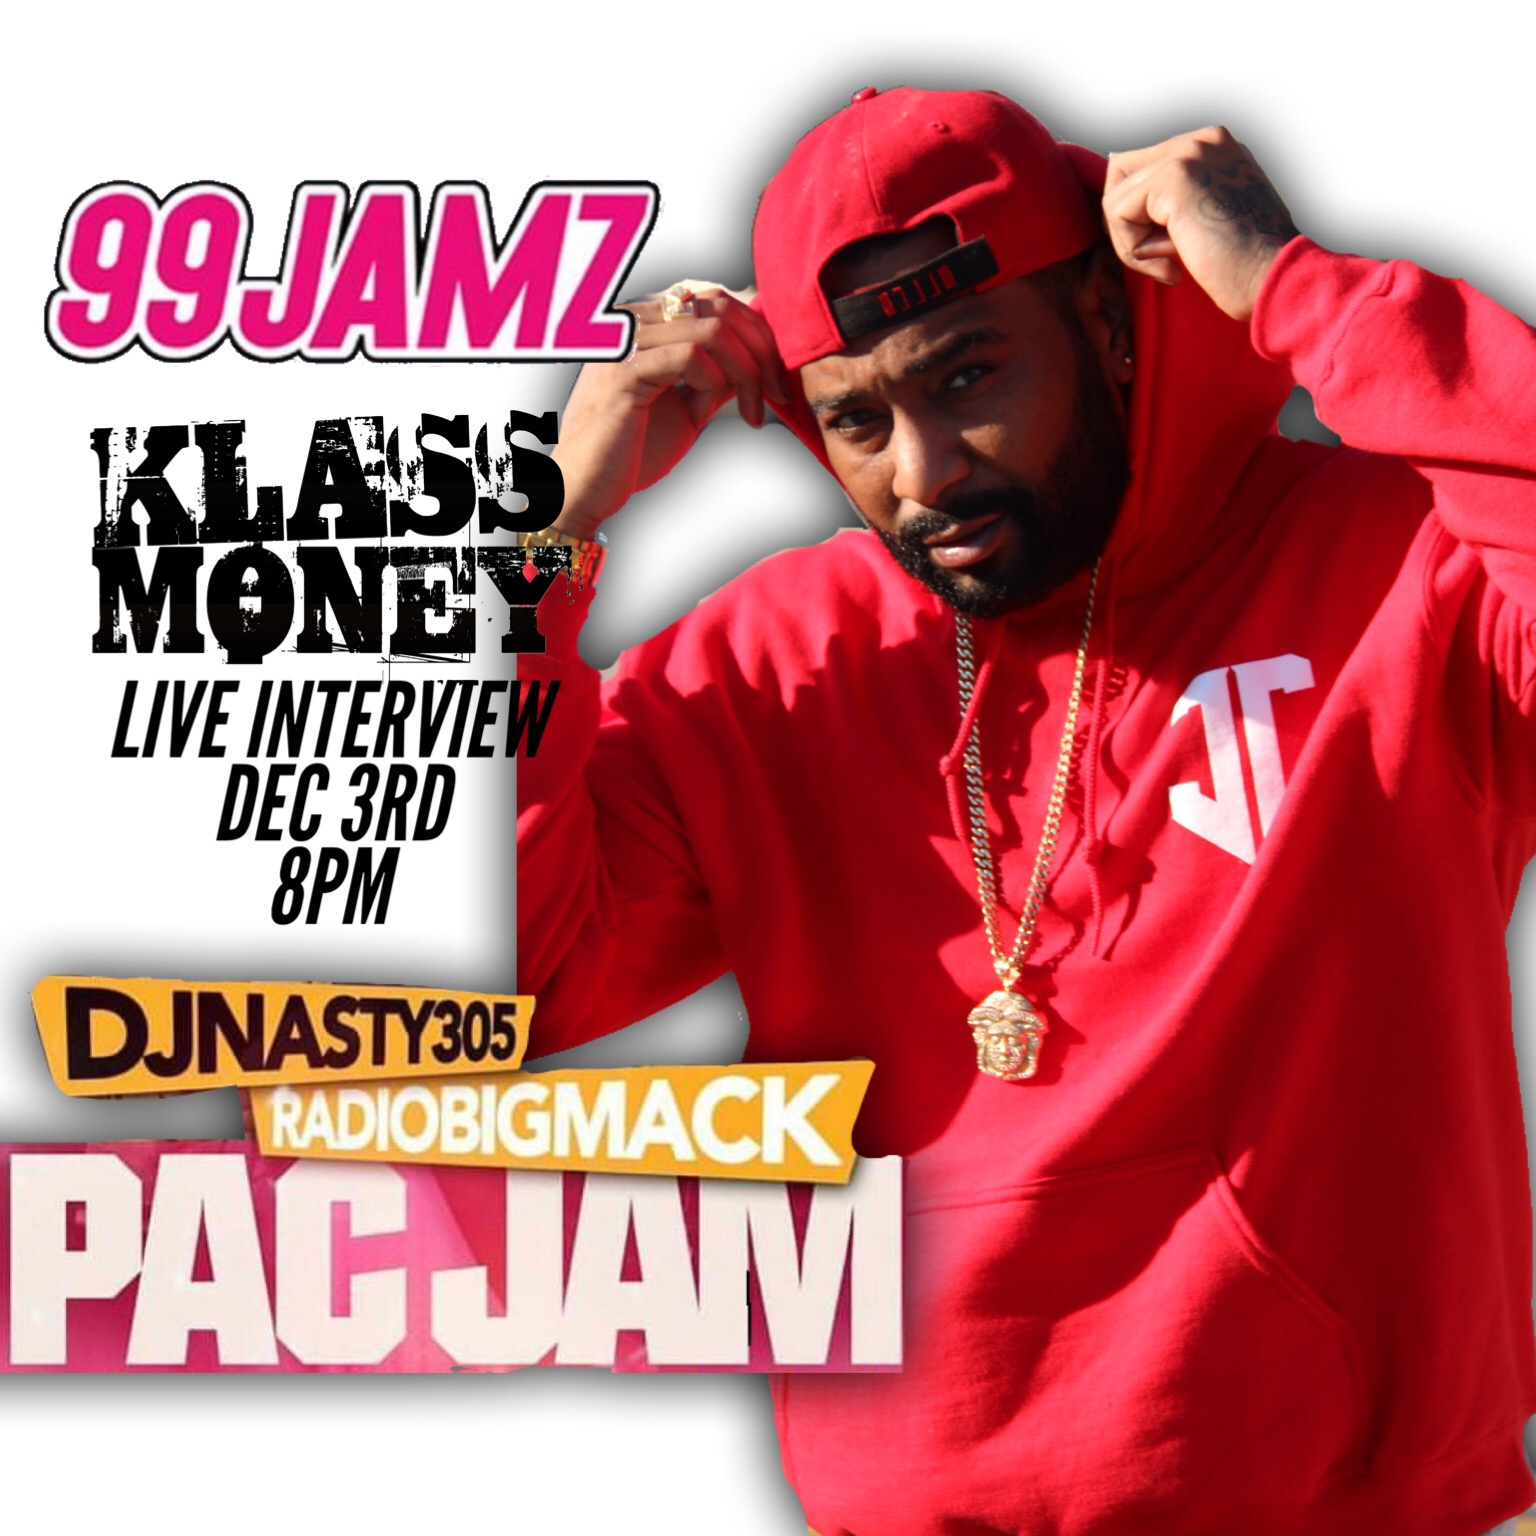 Klass Money Will Be Live On 99 Jamz Monday December 3rd At 8PM For An Interview With DJ Nasty And Radio Mac The Pac Jam Discussing His